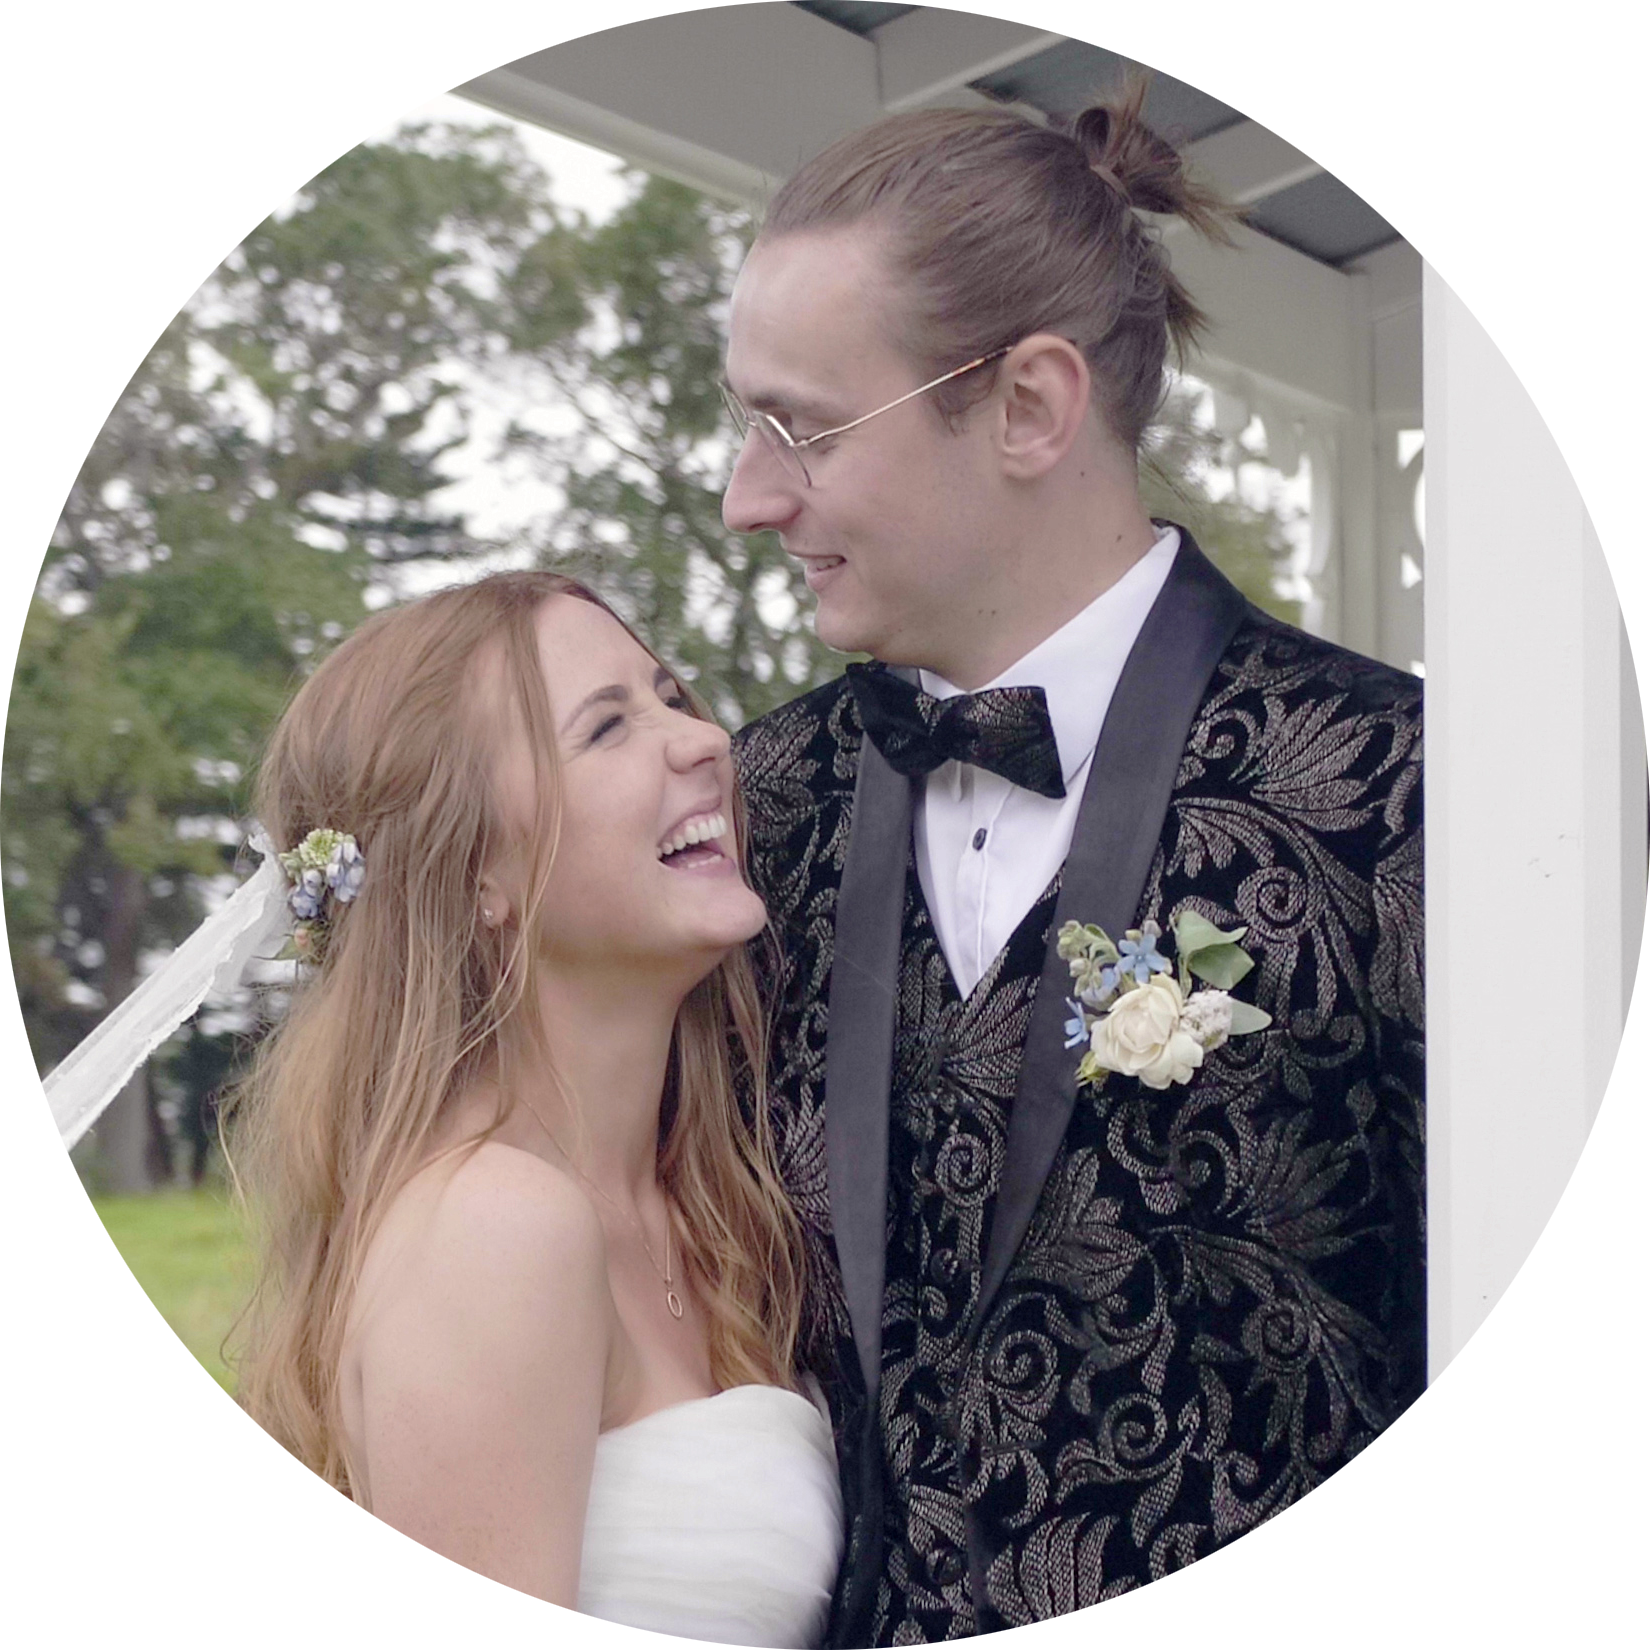 Isabella and Ben Ruffell got married at the Abbeville Estate in Auckland in December 2018